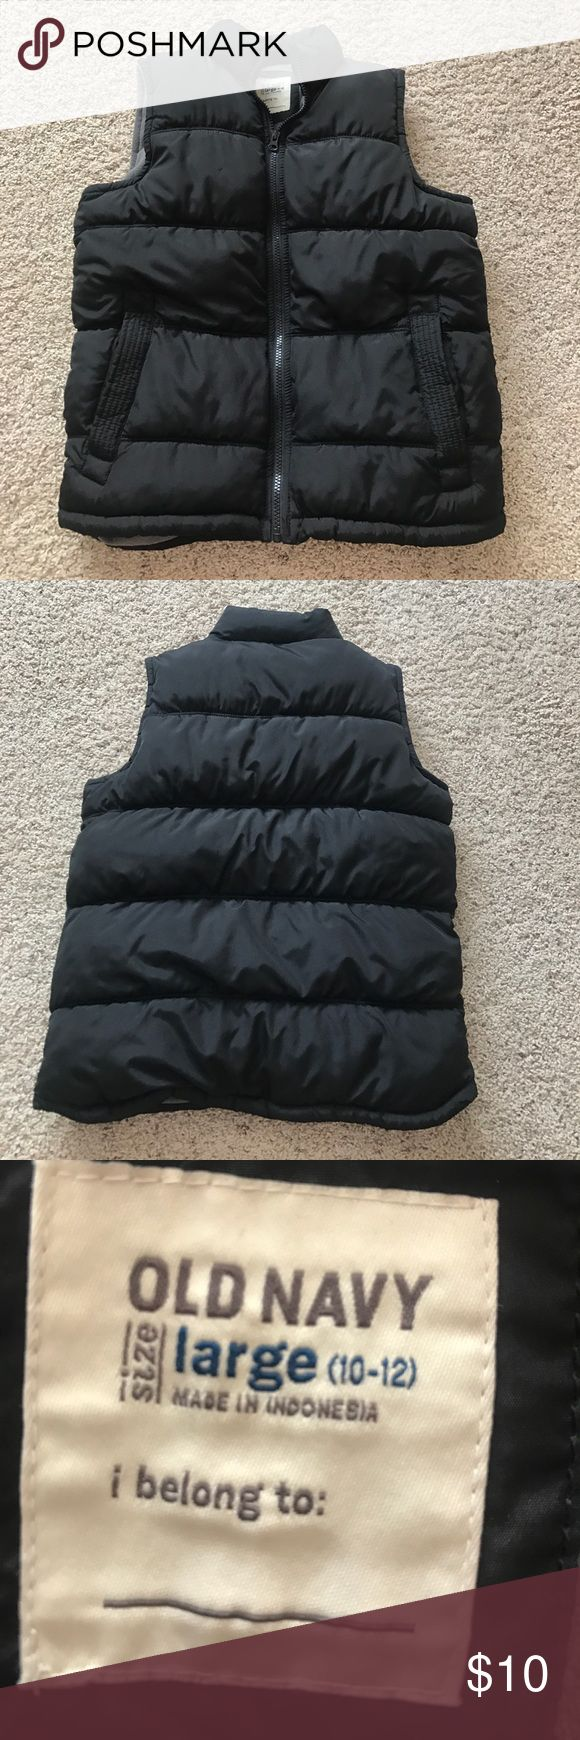 Old Navy puffer vest Puffer vest worn once!!!  Excellent condition!  Black with gray fleece inside. Old Navy Jackets & Coats Vests